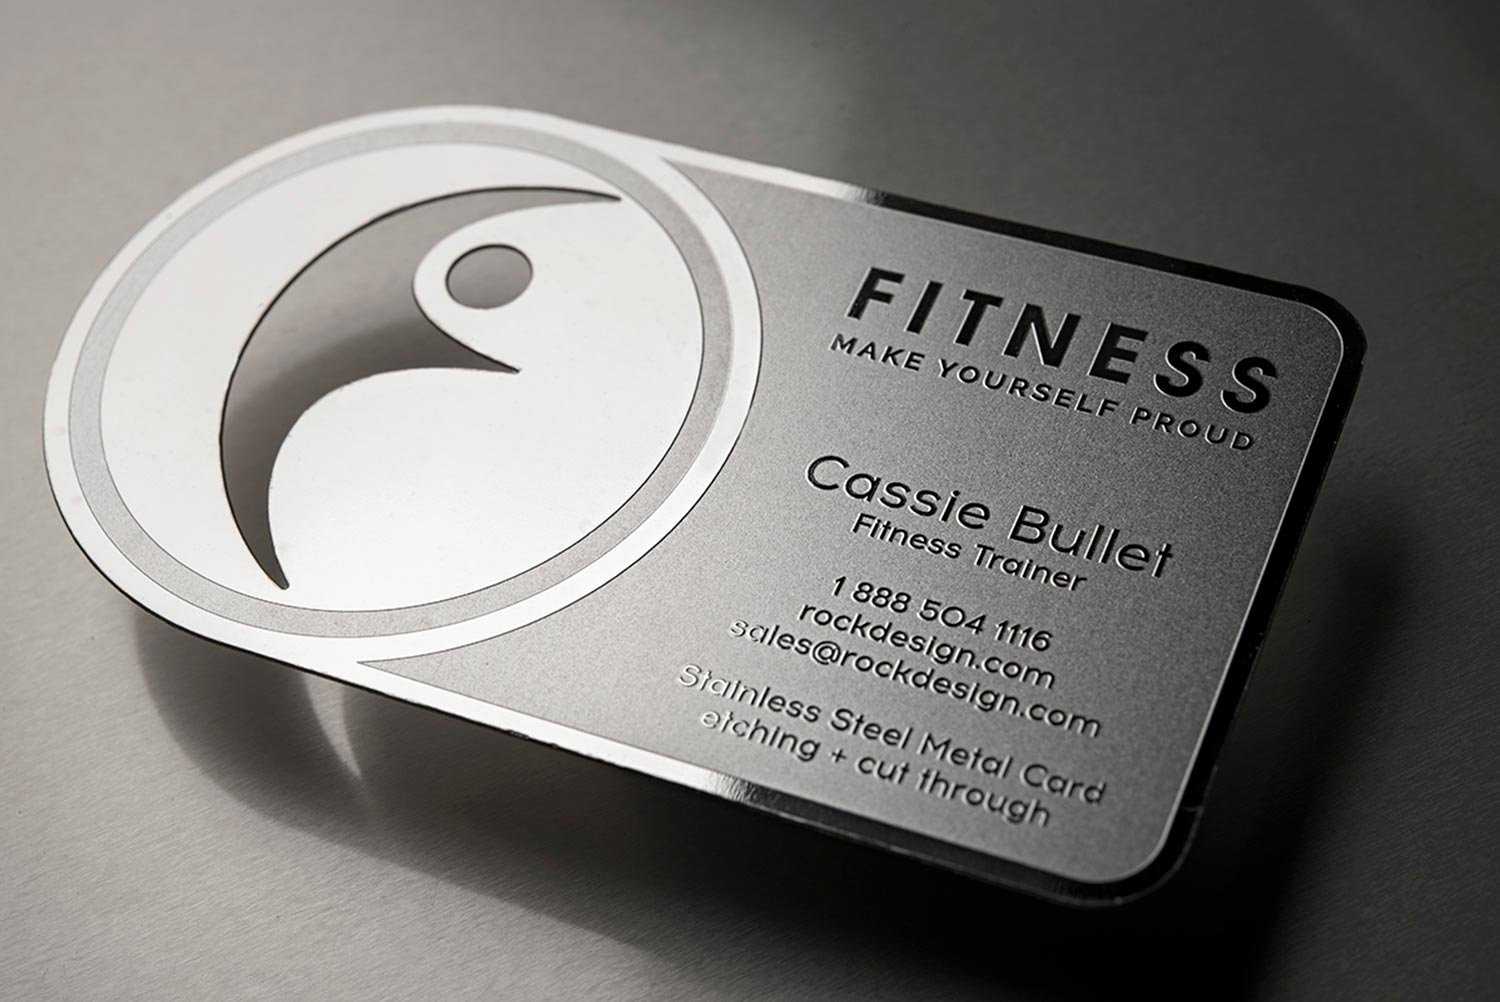 Personal Training Business Card Inspirational Free Innovative Stainless Steel Personal Trainer Business Card Template Fitness